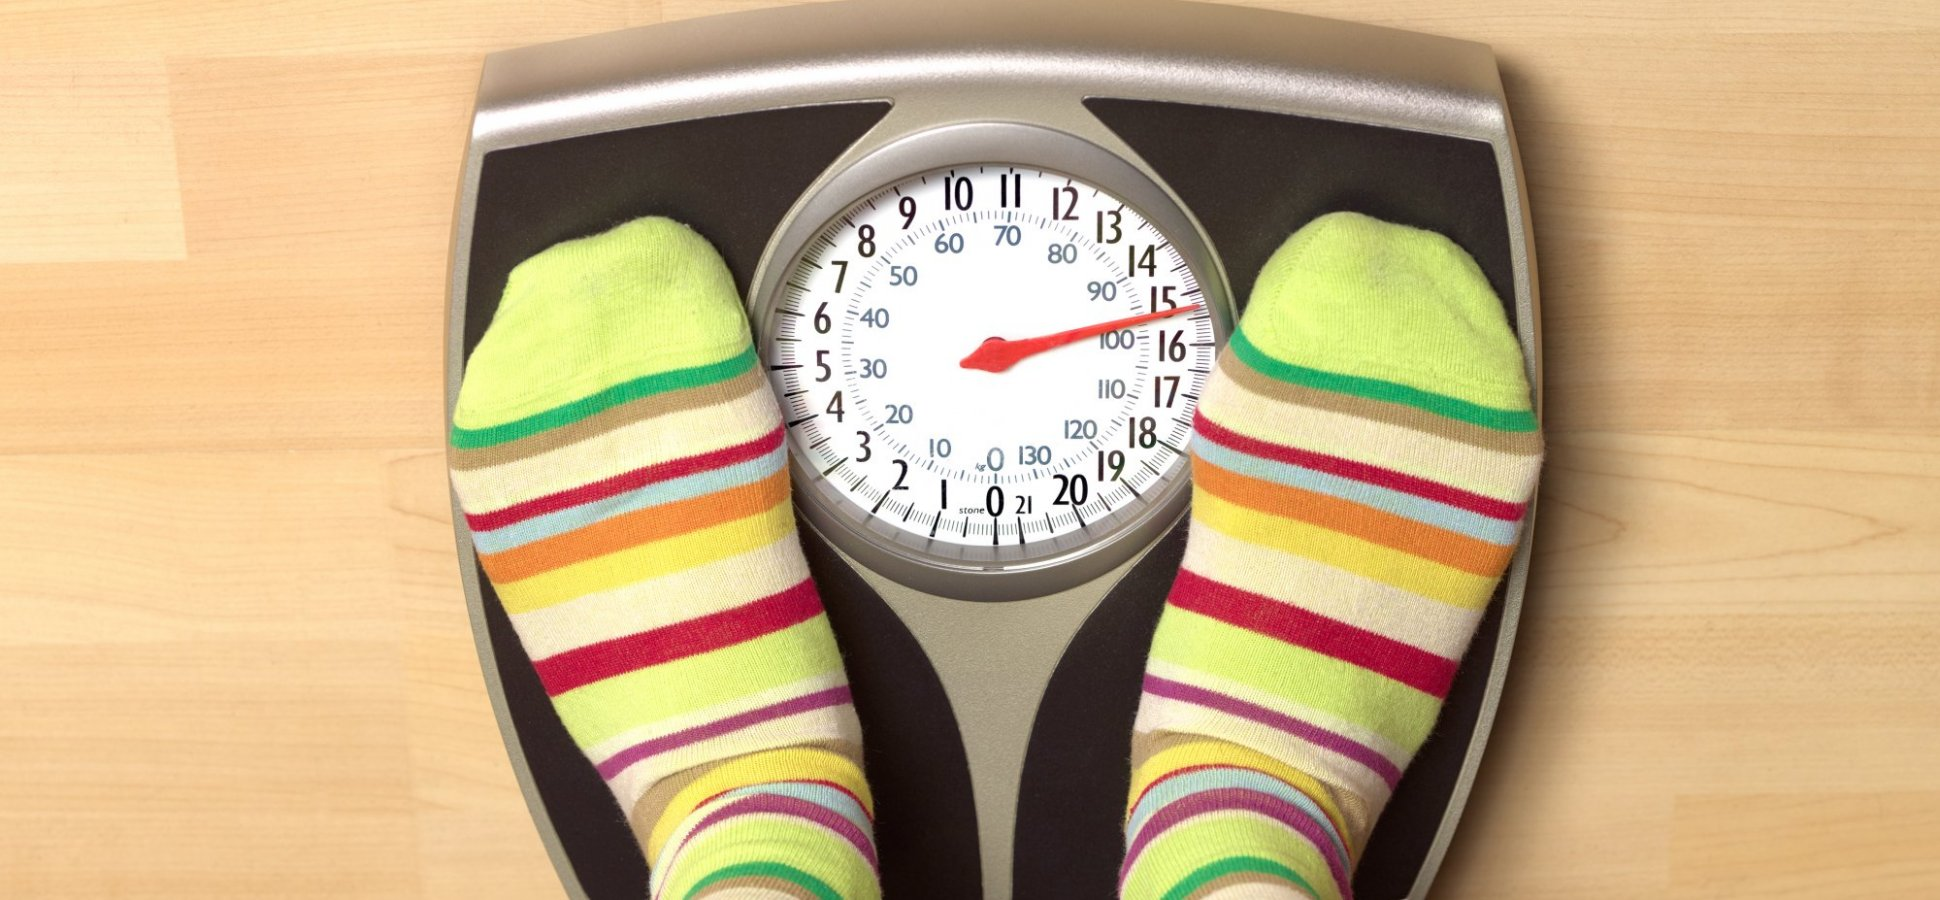 Washington's New Obesity Law Is Super Confusing. Here's Why